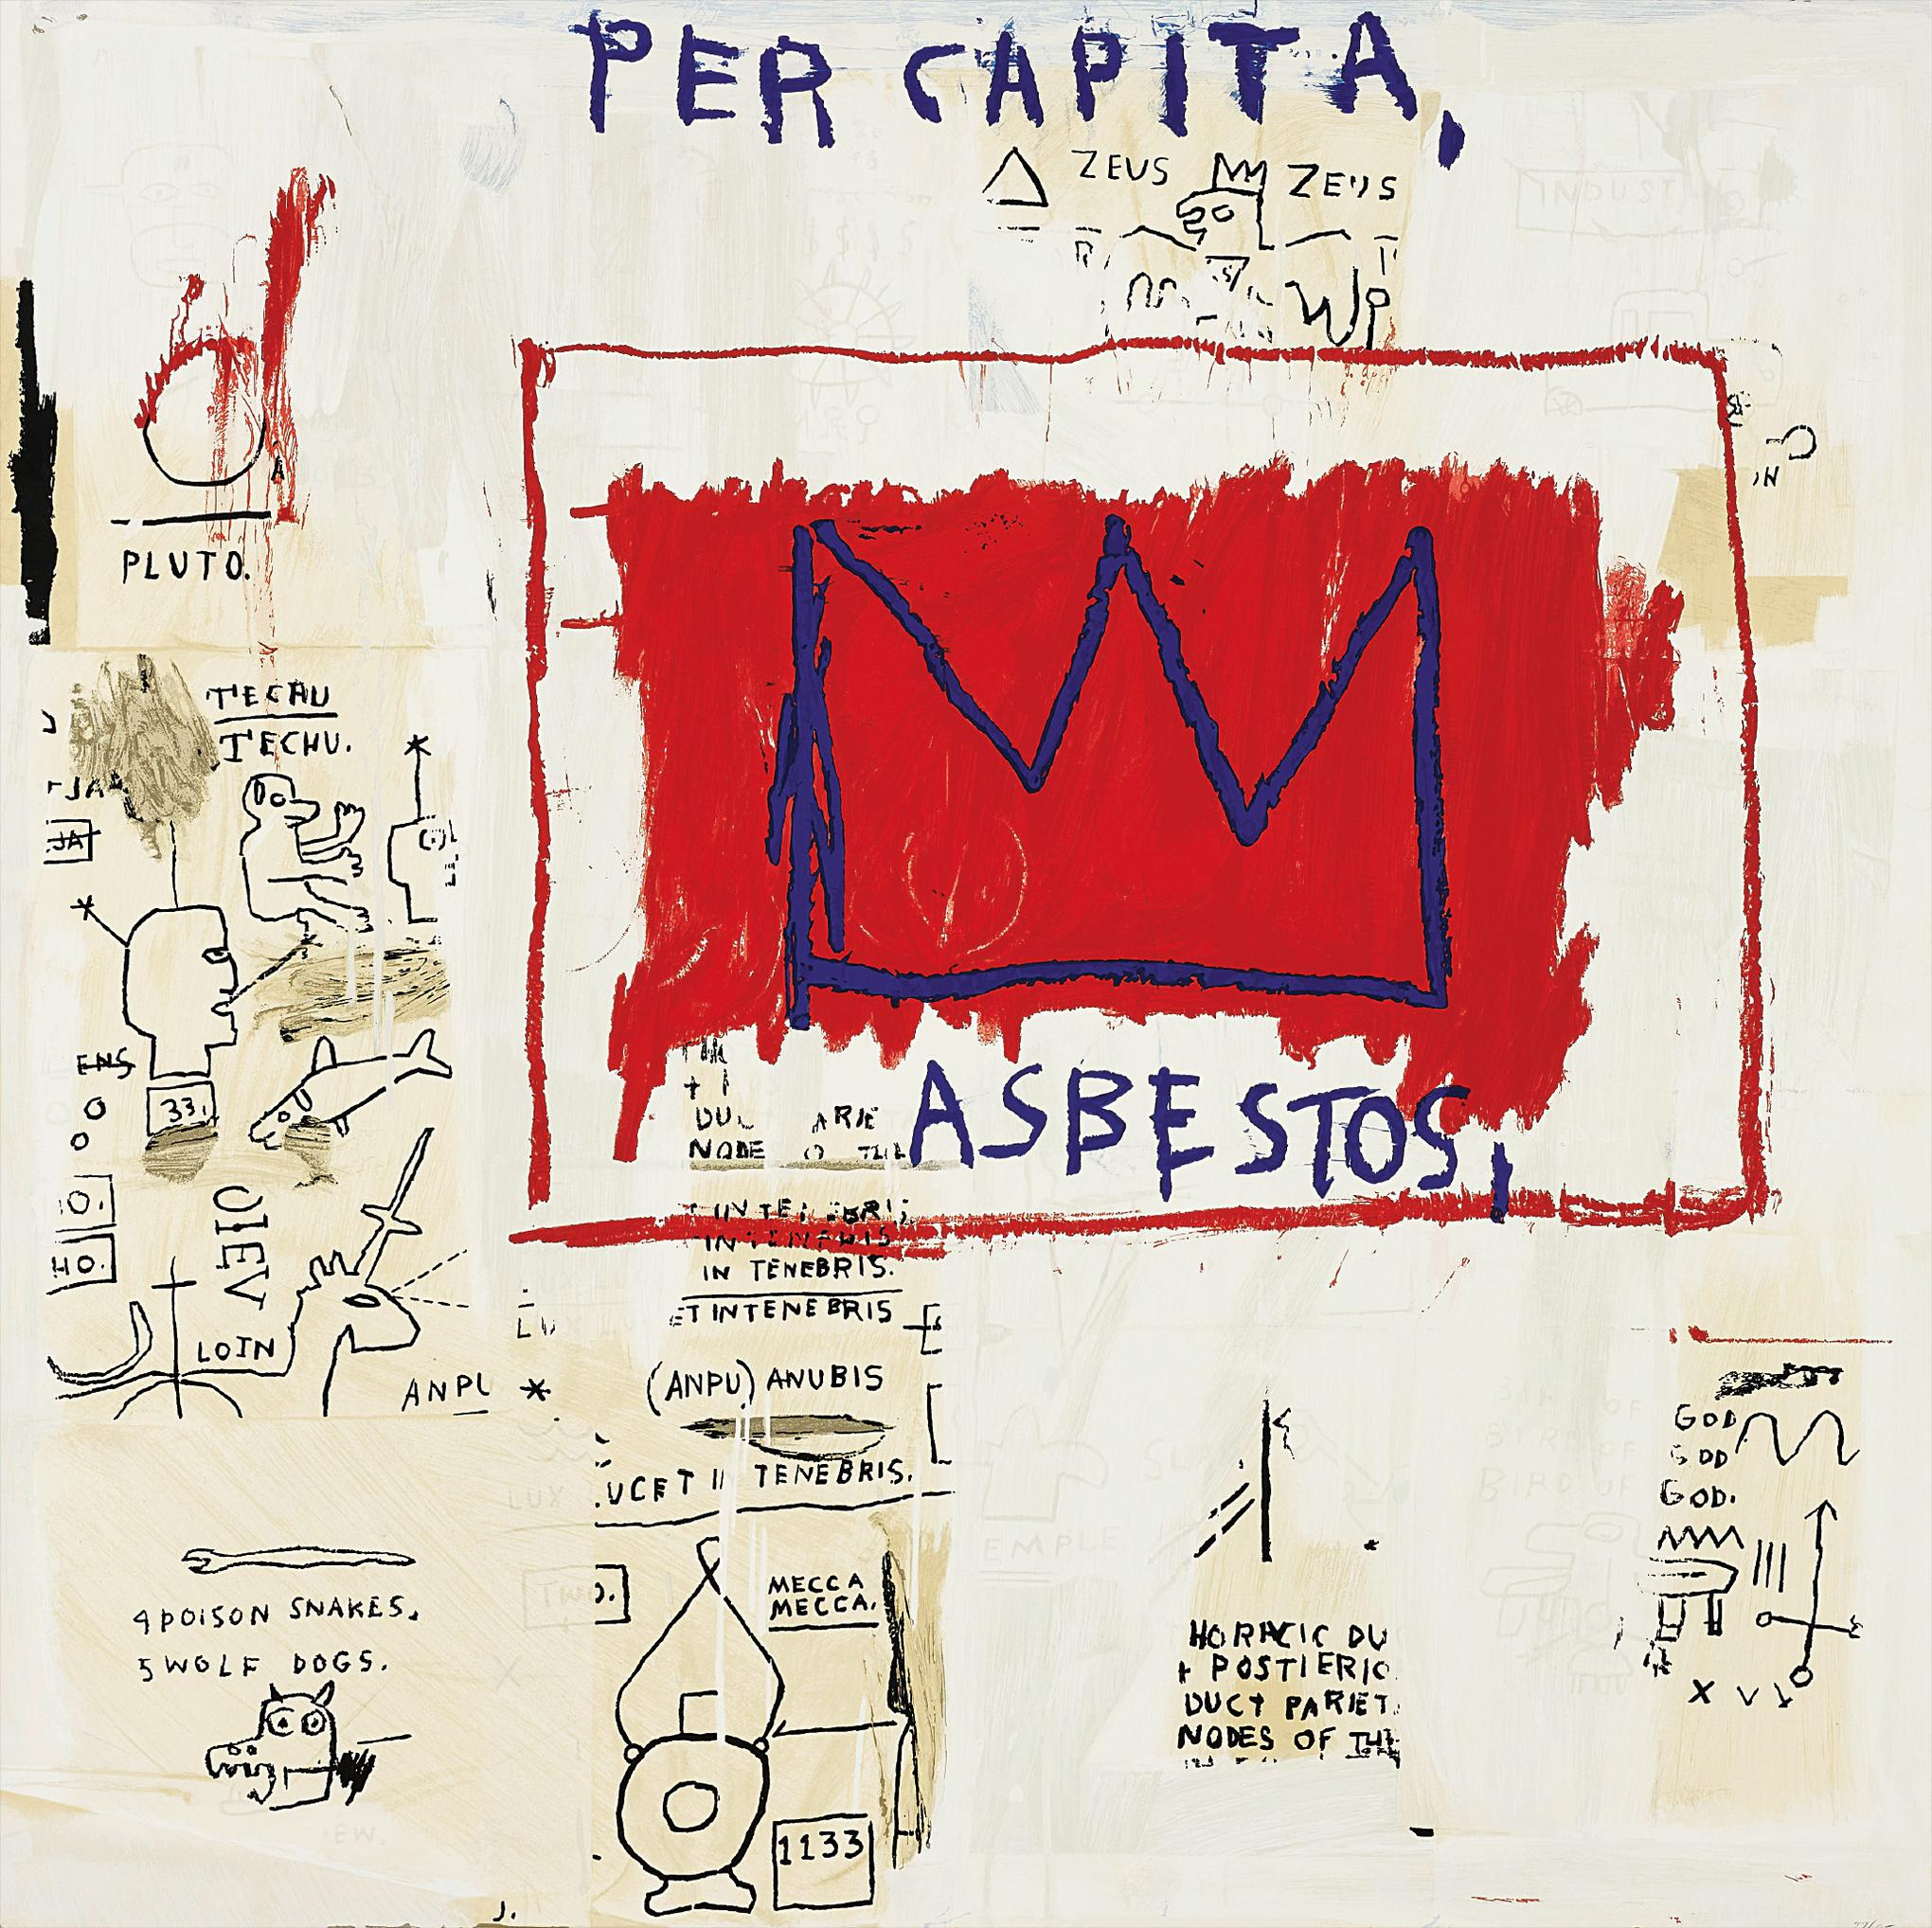 Jean-Michel Basquiat-After Jean-Michel Basquiat - Per Capita, From Portfolio I-2001